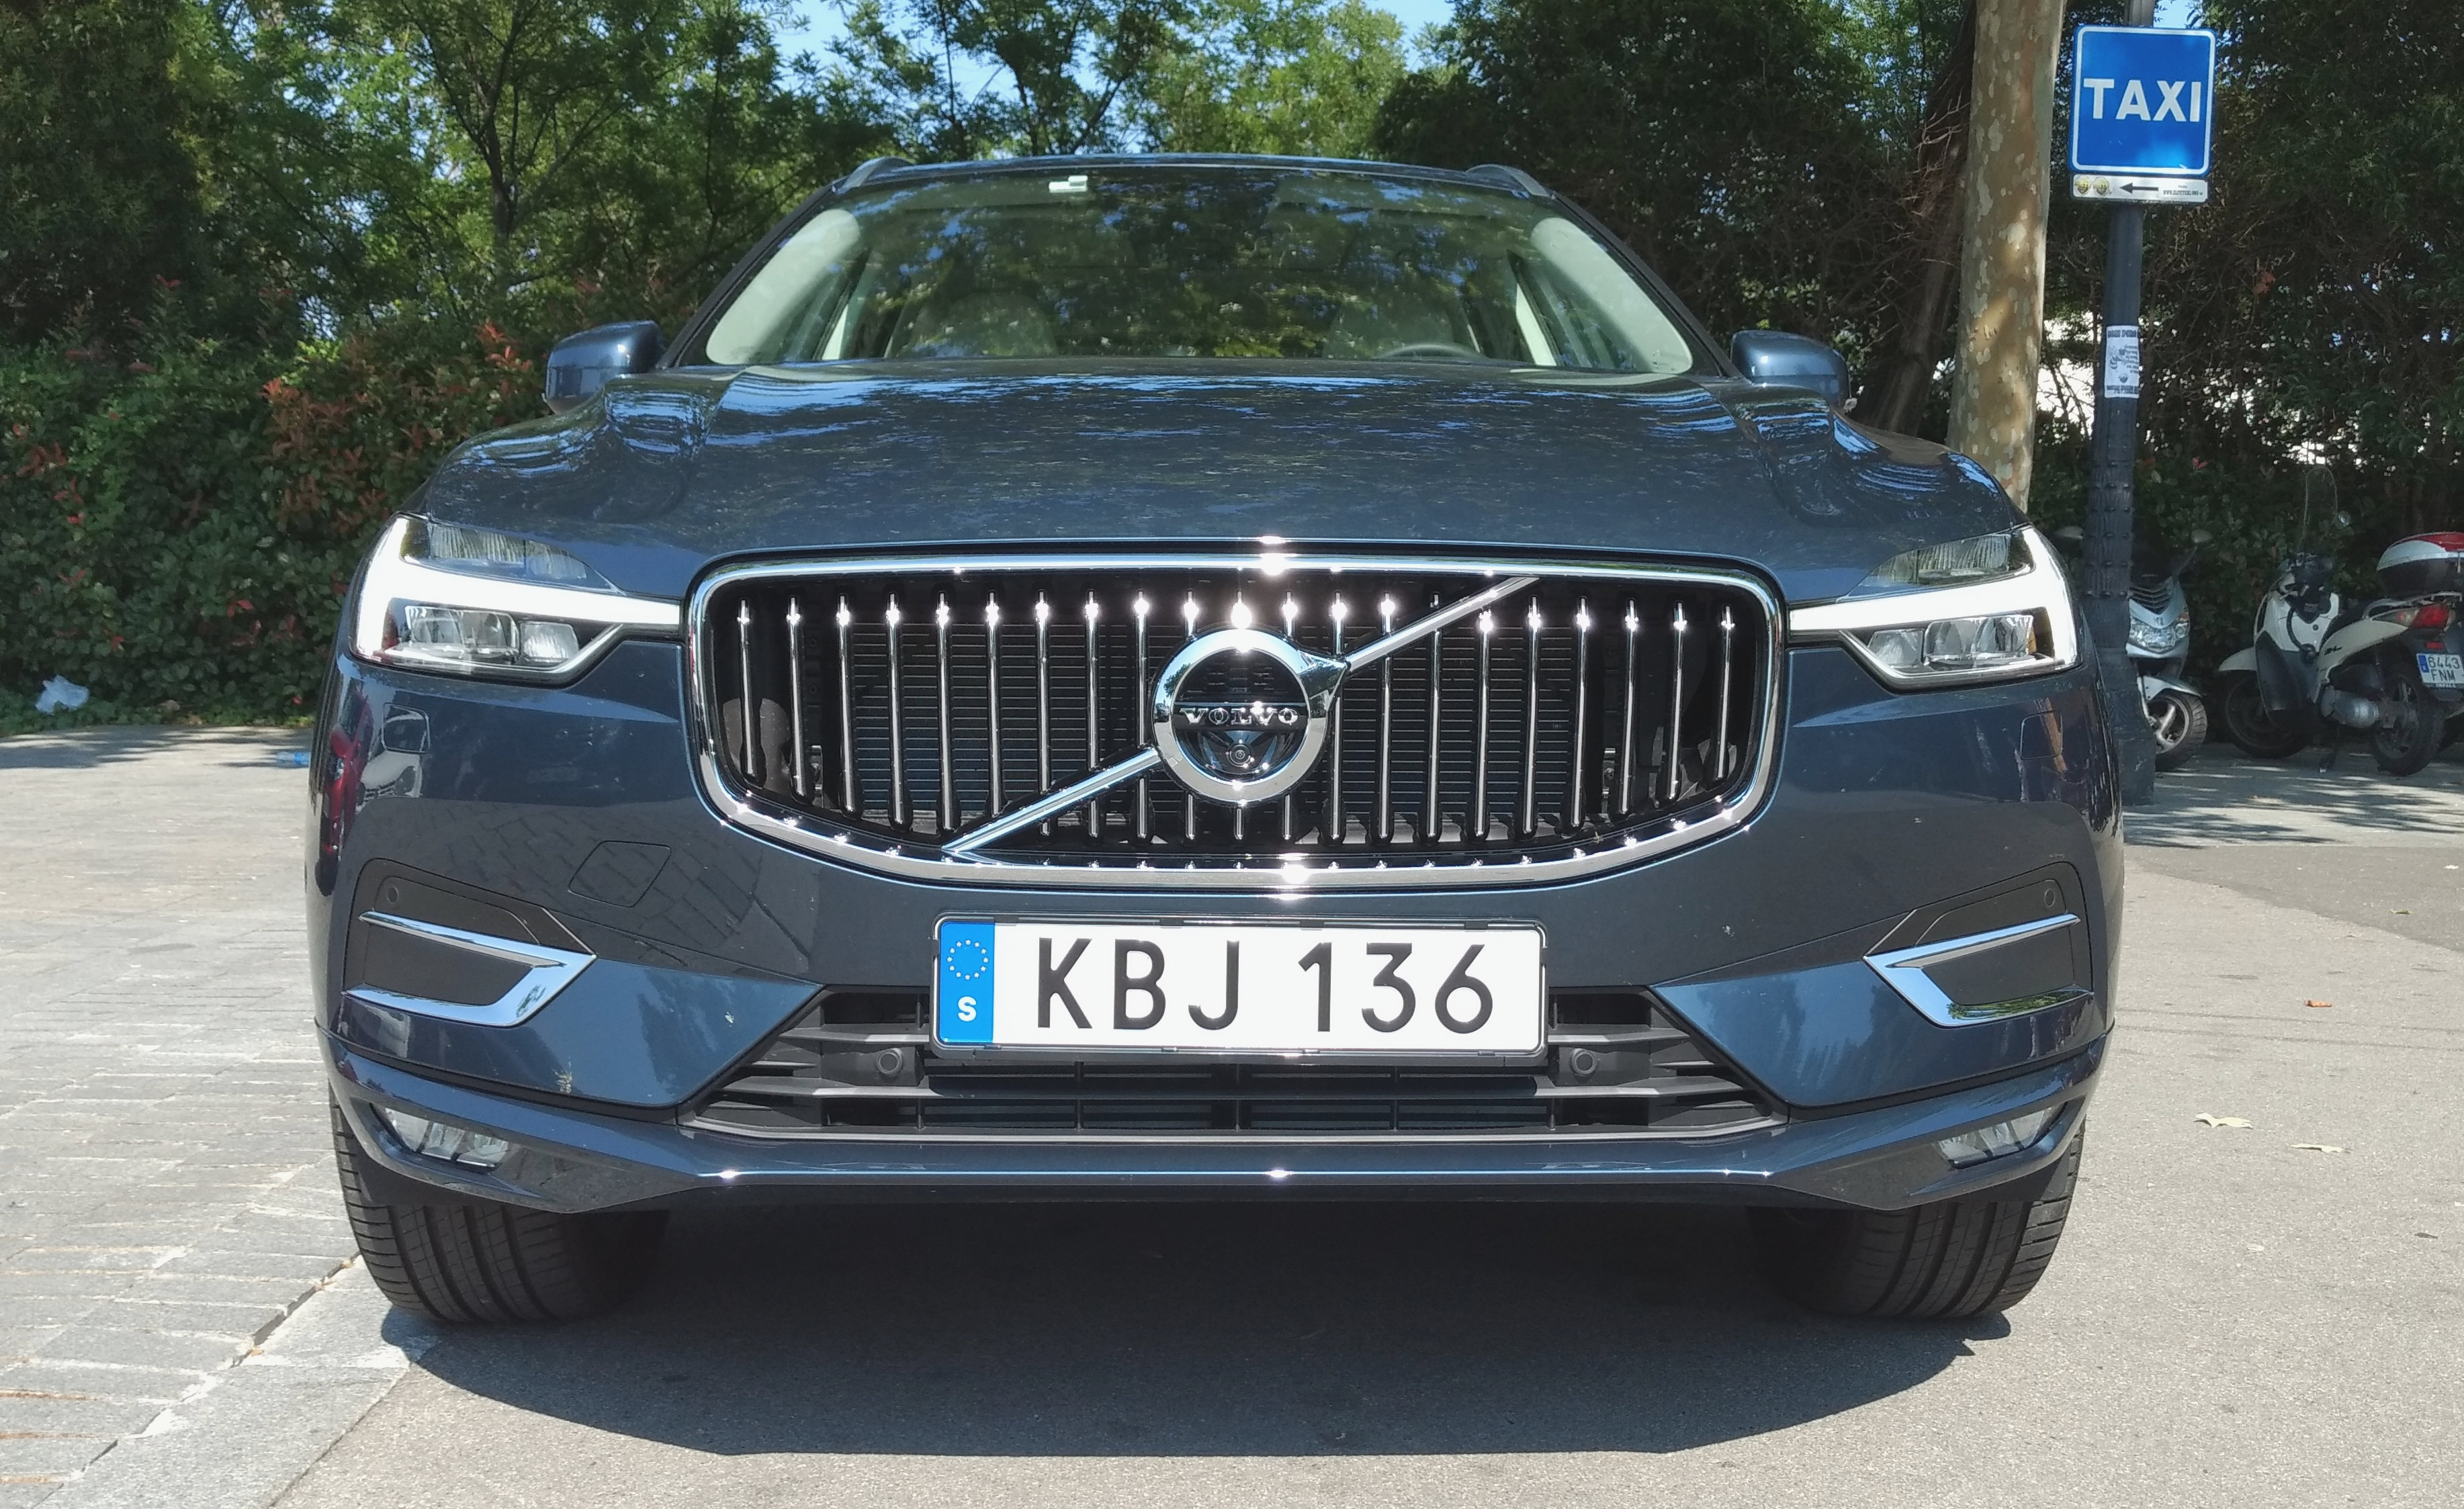 volvo polestar new ps touch up news output goes treatment to twin range electric engine tune the ups after